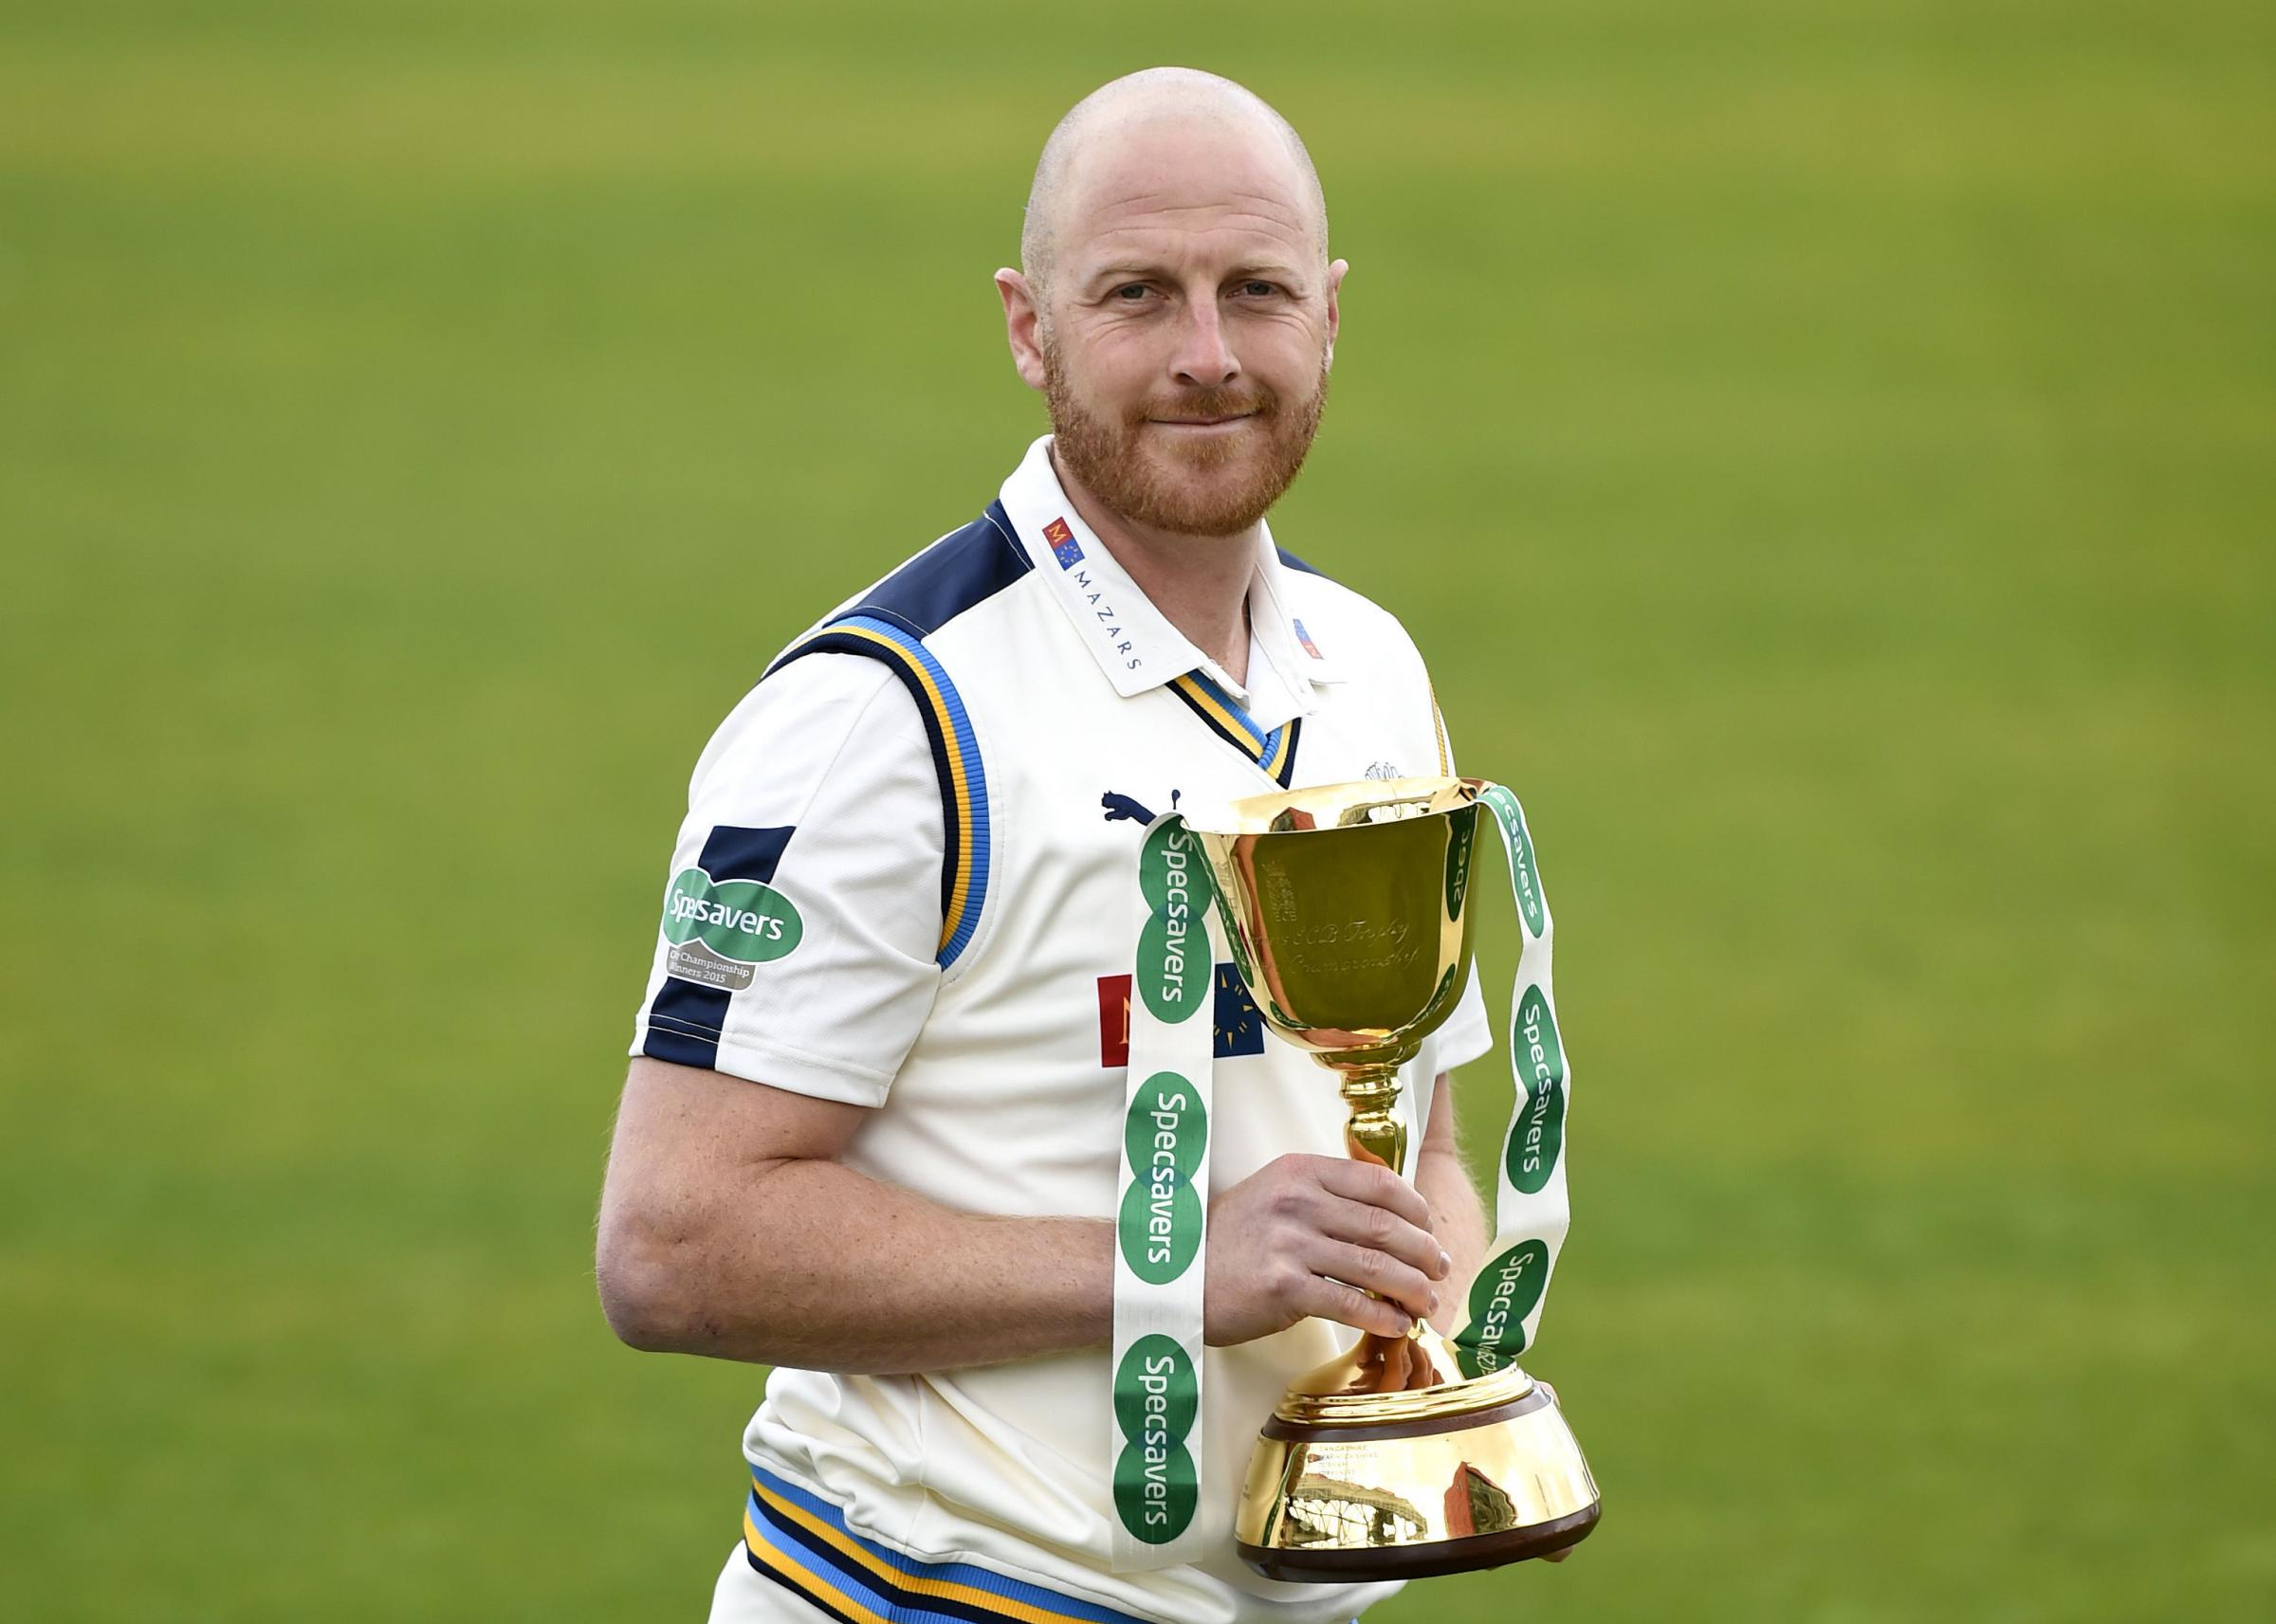 Andrew Gale holds aloft the County Championship Trophy which Yorkshire won in 2014 and 2015. The coach believes it could be two to three years before they become title contenders again     Picture: Martin Rickett/PA Wire